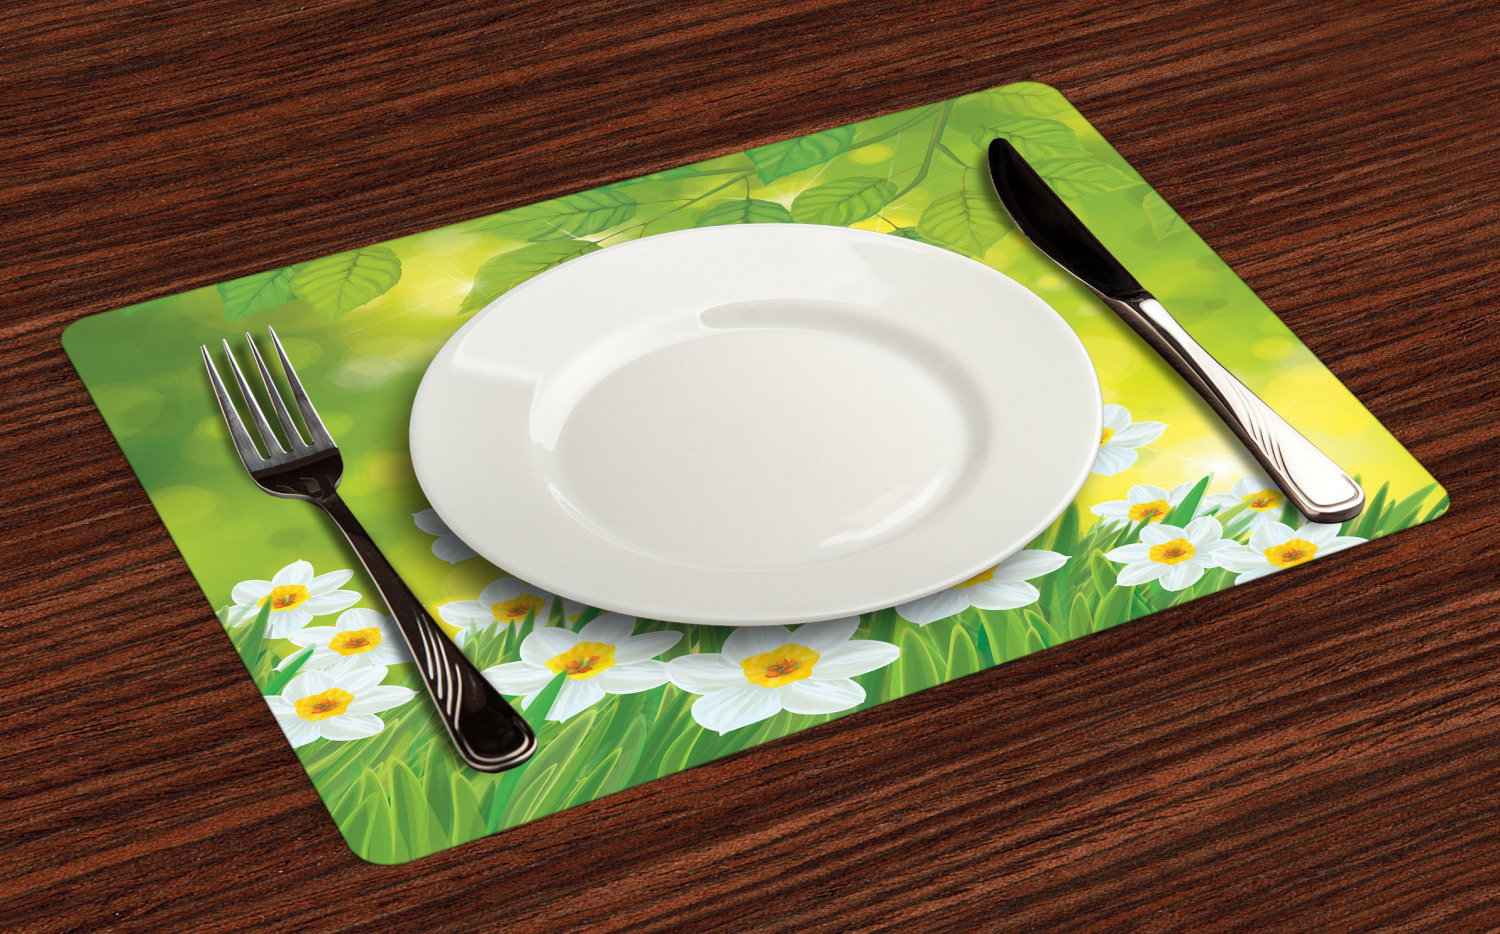 Ambesonne-Flower-Pattern-Placemat-Set-of-4-Fabric-Place-Mats-for-Table-Decor thumbnail 73